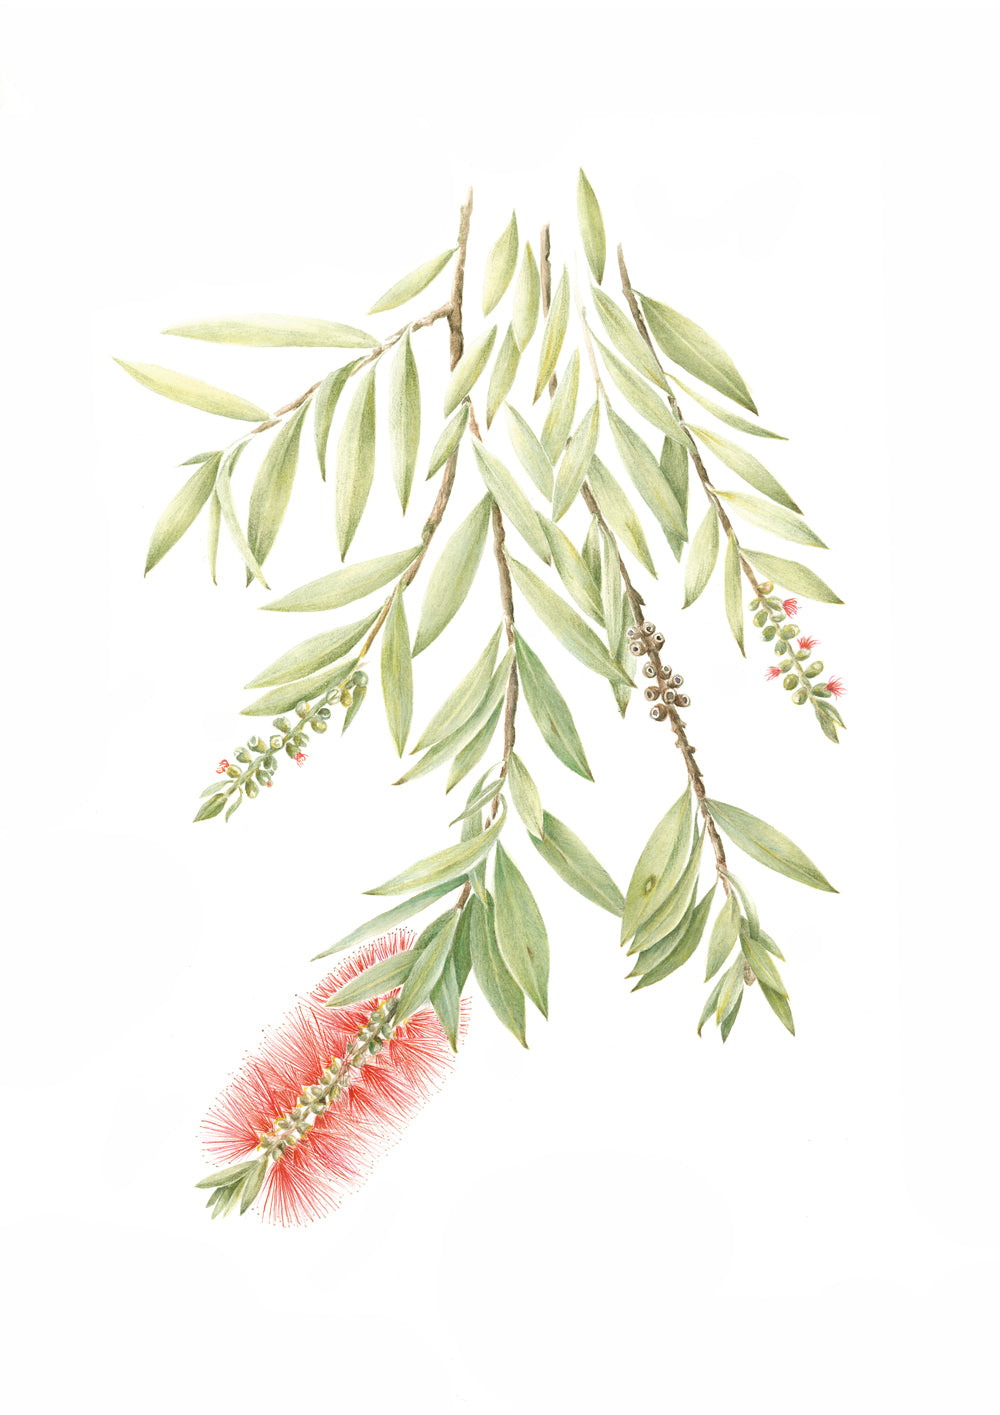 Bottle Brush Print by Alison Dickin